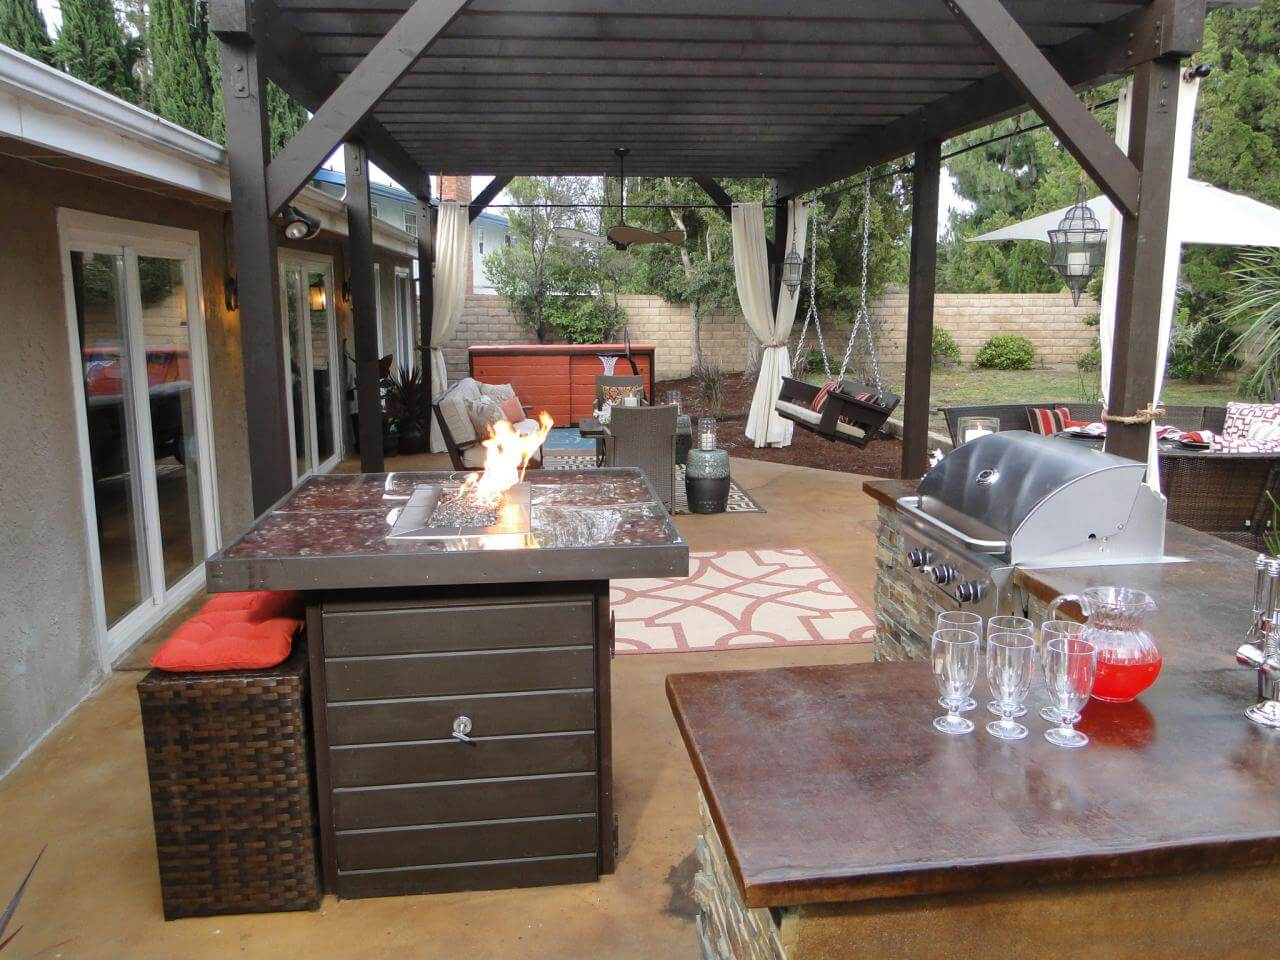 Relaxed kitchen island outdoors